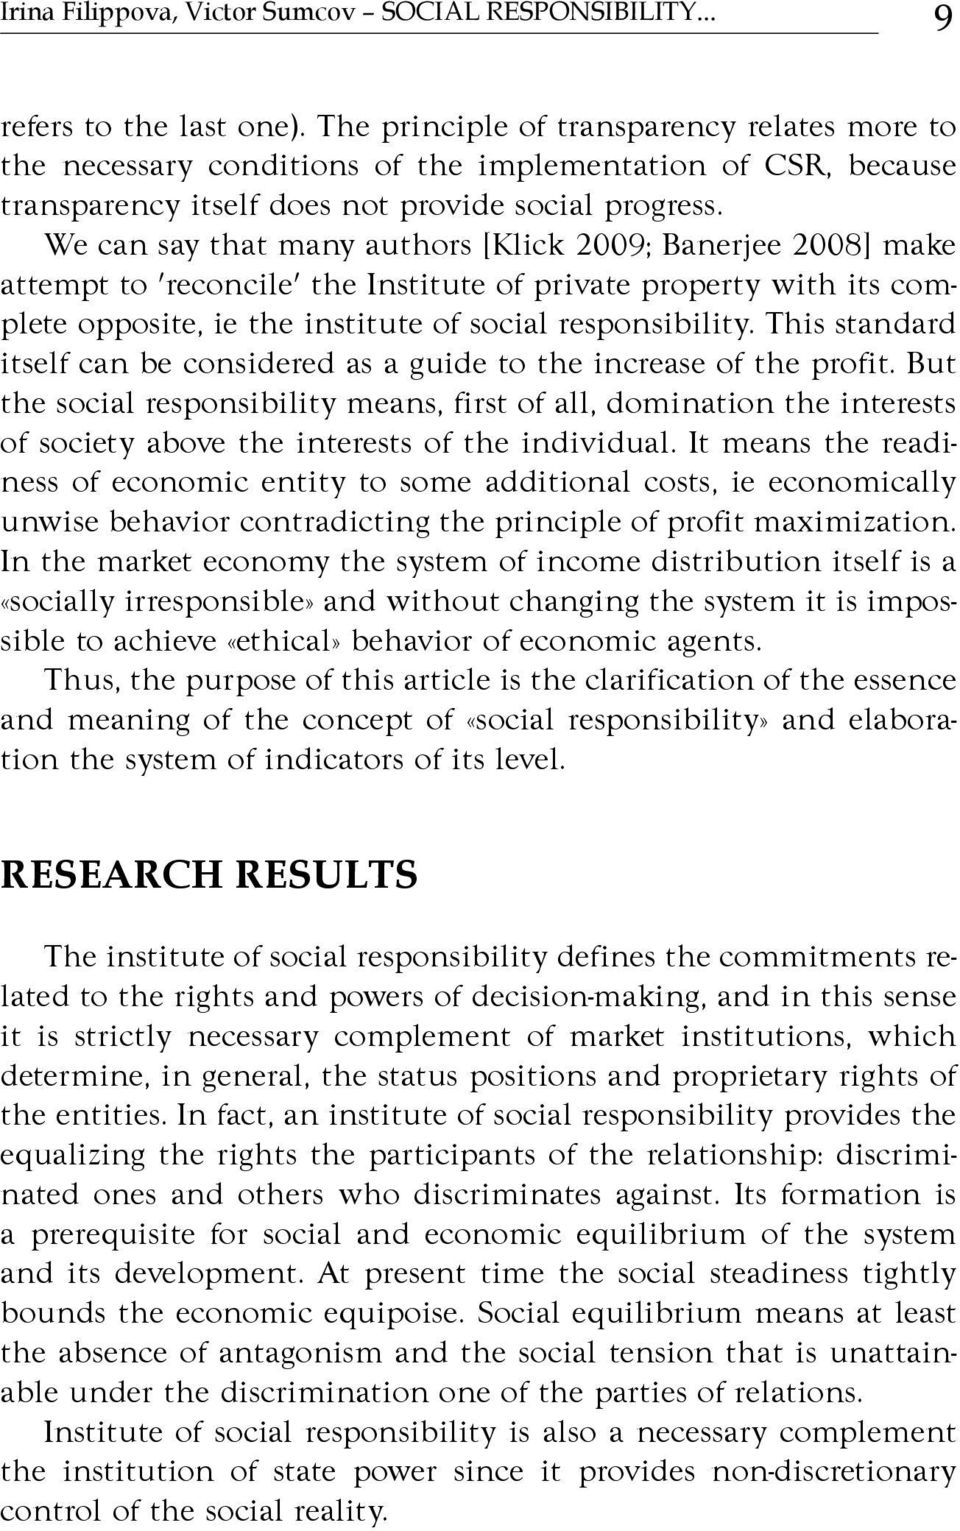 We can say that many authors [Klick 2009; Banerjee 2008] make attempt to 'reconcile' the Institute of private property with its complete opposite, ie the institute of social responsibility.